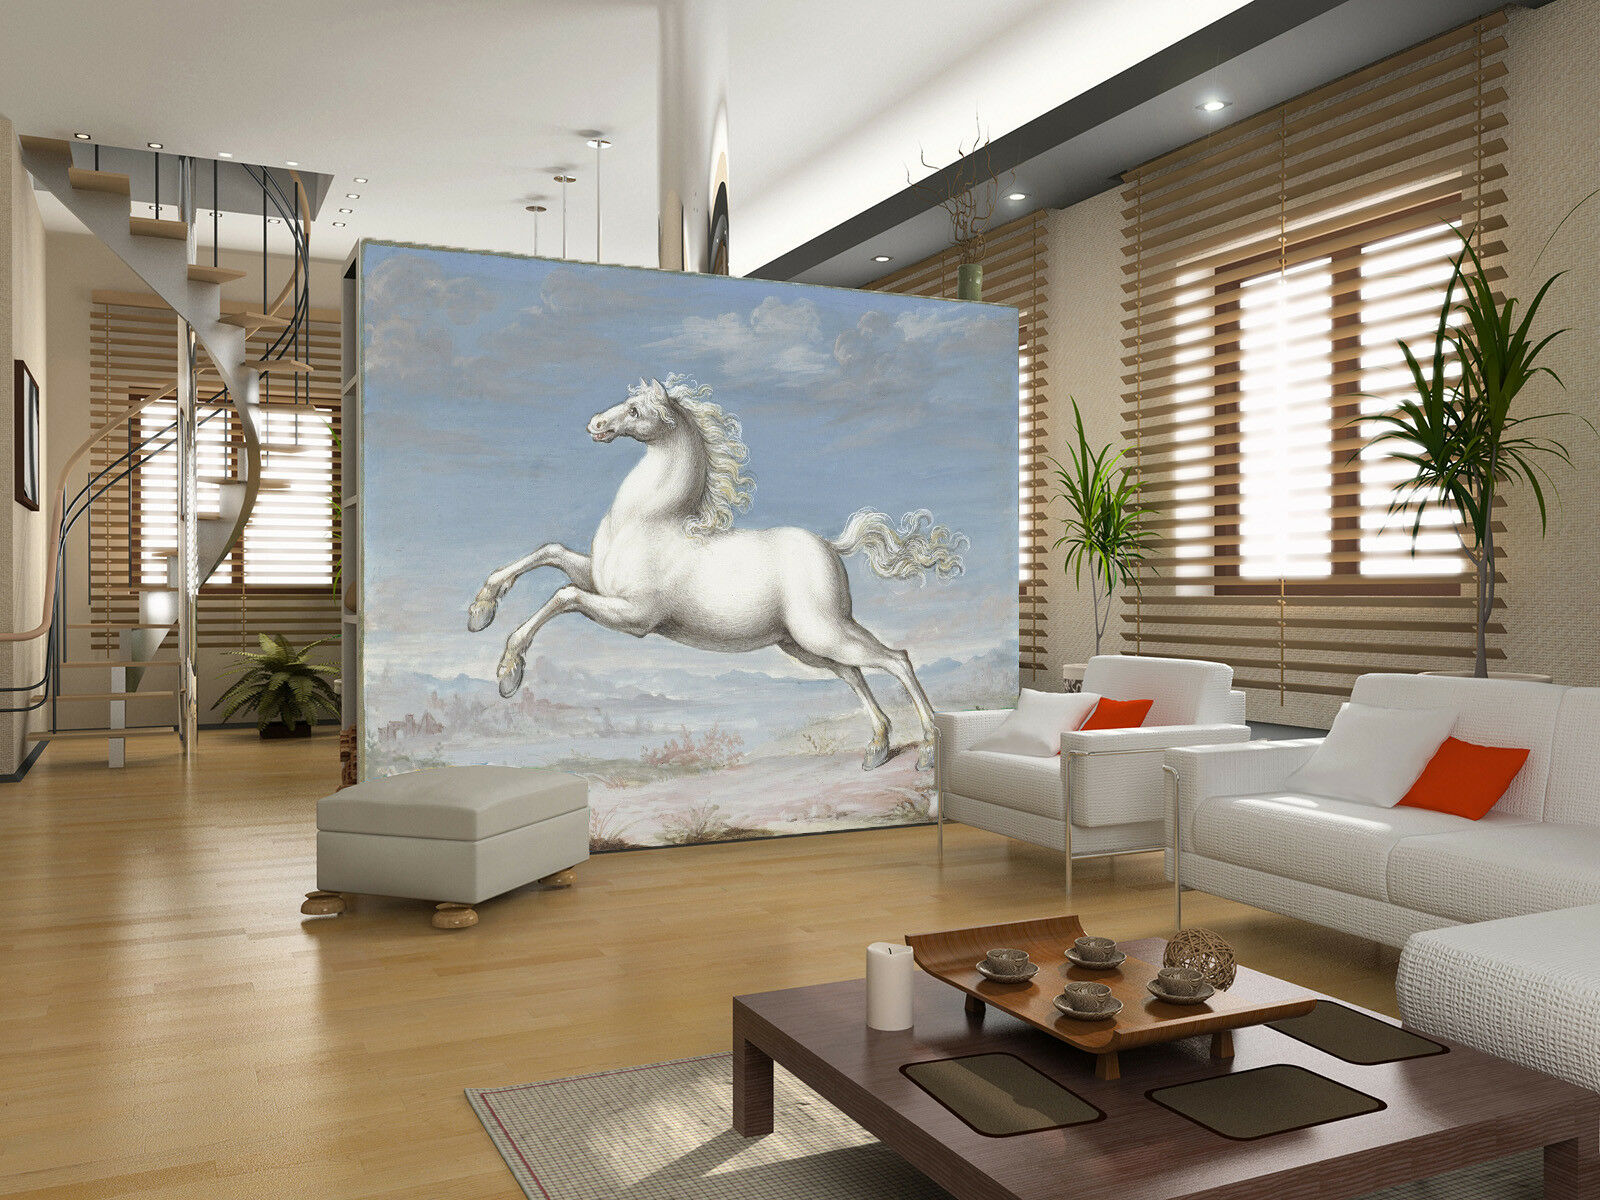 3D Run Horse 405 Wallpaper Murals Wall Print Wallpaper Mural AJ WALLPAPER UK